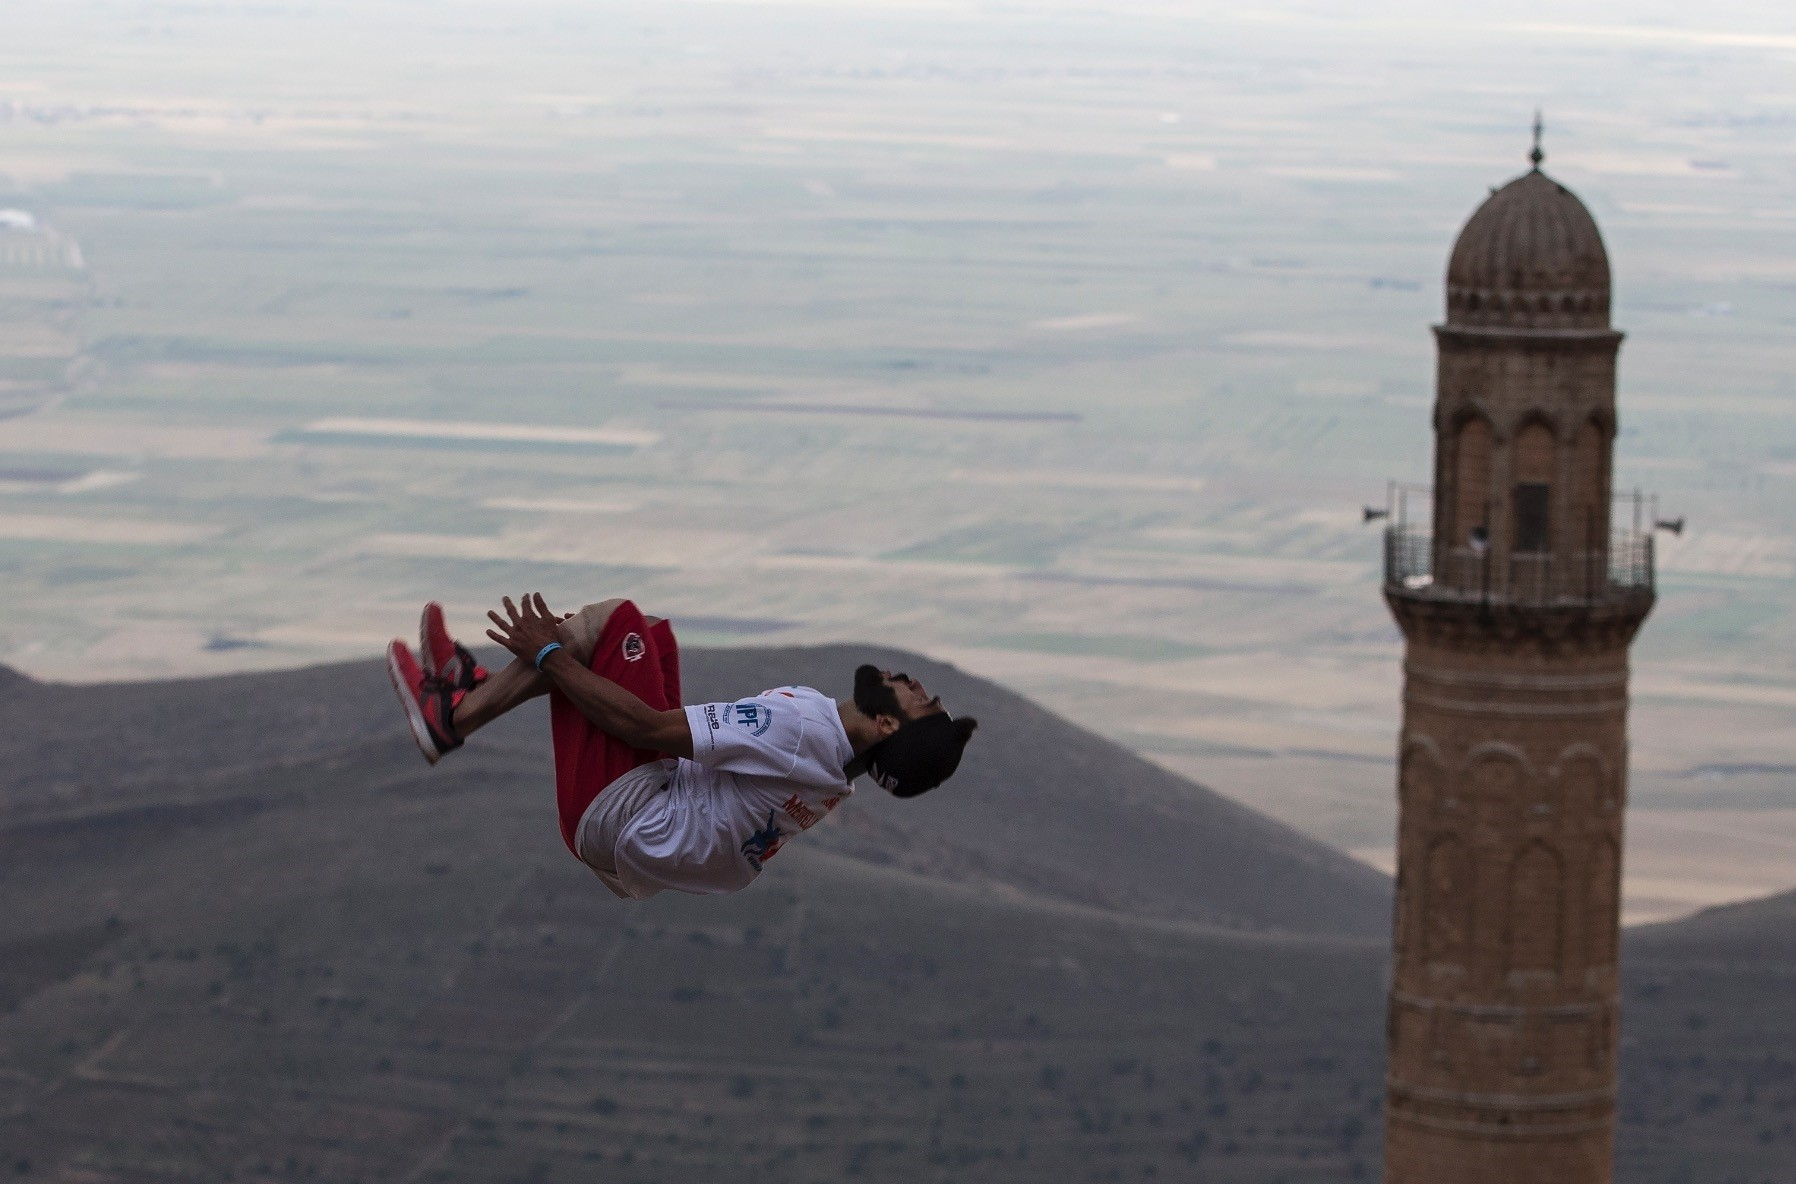 Parkour masters Mardin provided a good backdrop for parkour athletes.